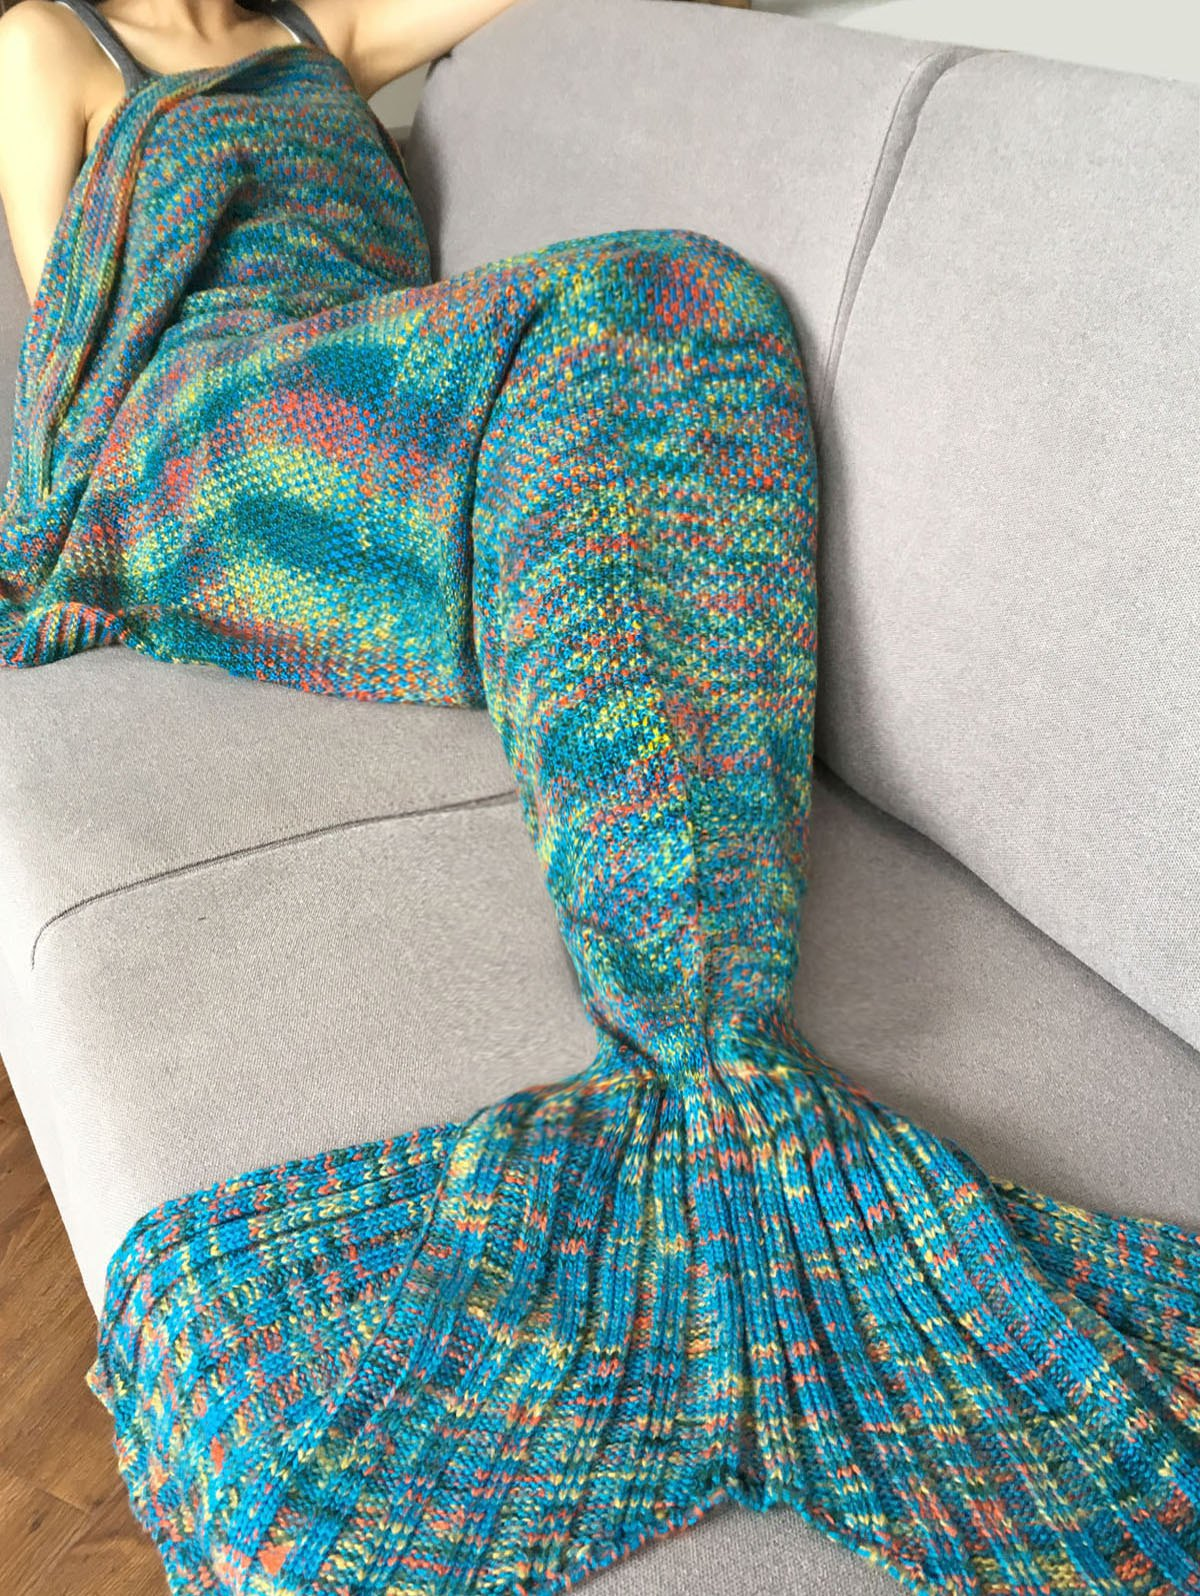 Fashion Crochet Knitted Super Soft Mermaid Tail Shape Blanket For AdultHOME<br><br>Color: BLUE; Type: Knitted; Material: Cotton; Pattern Type: Stripe; Size(L*W)(CM): 180*90CM; Weight: 1.0800kg; Package Contents: 1 x Blanket;